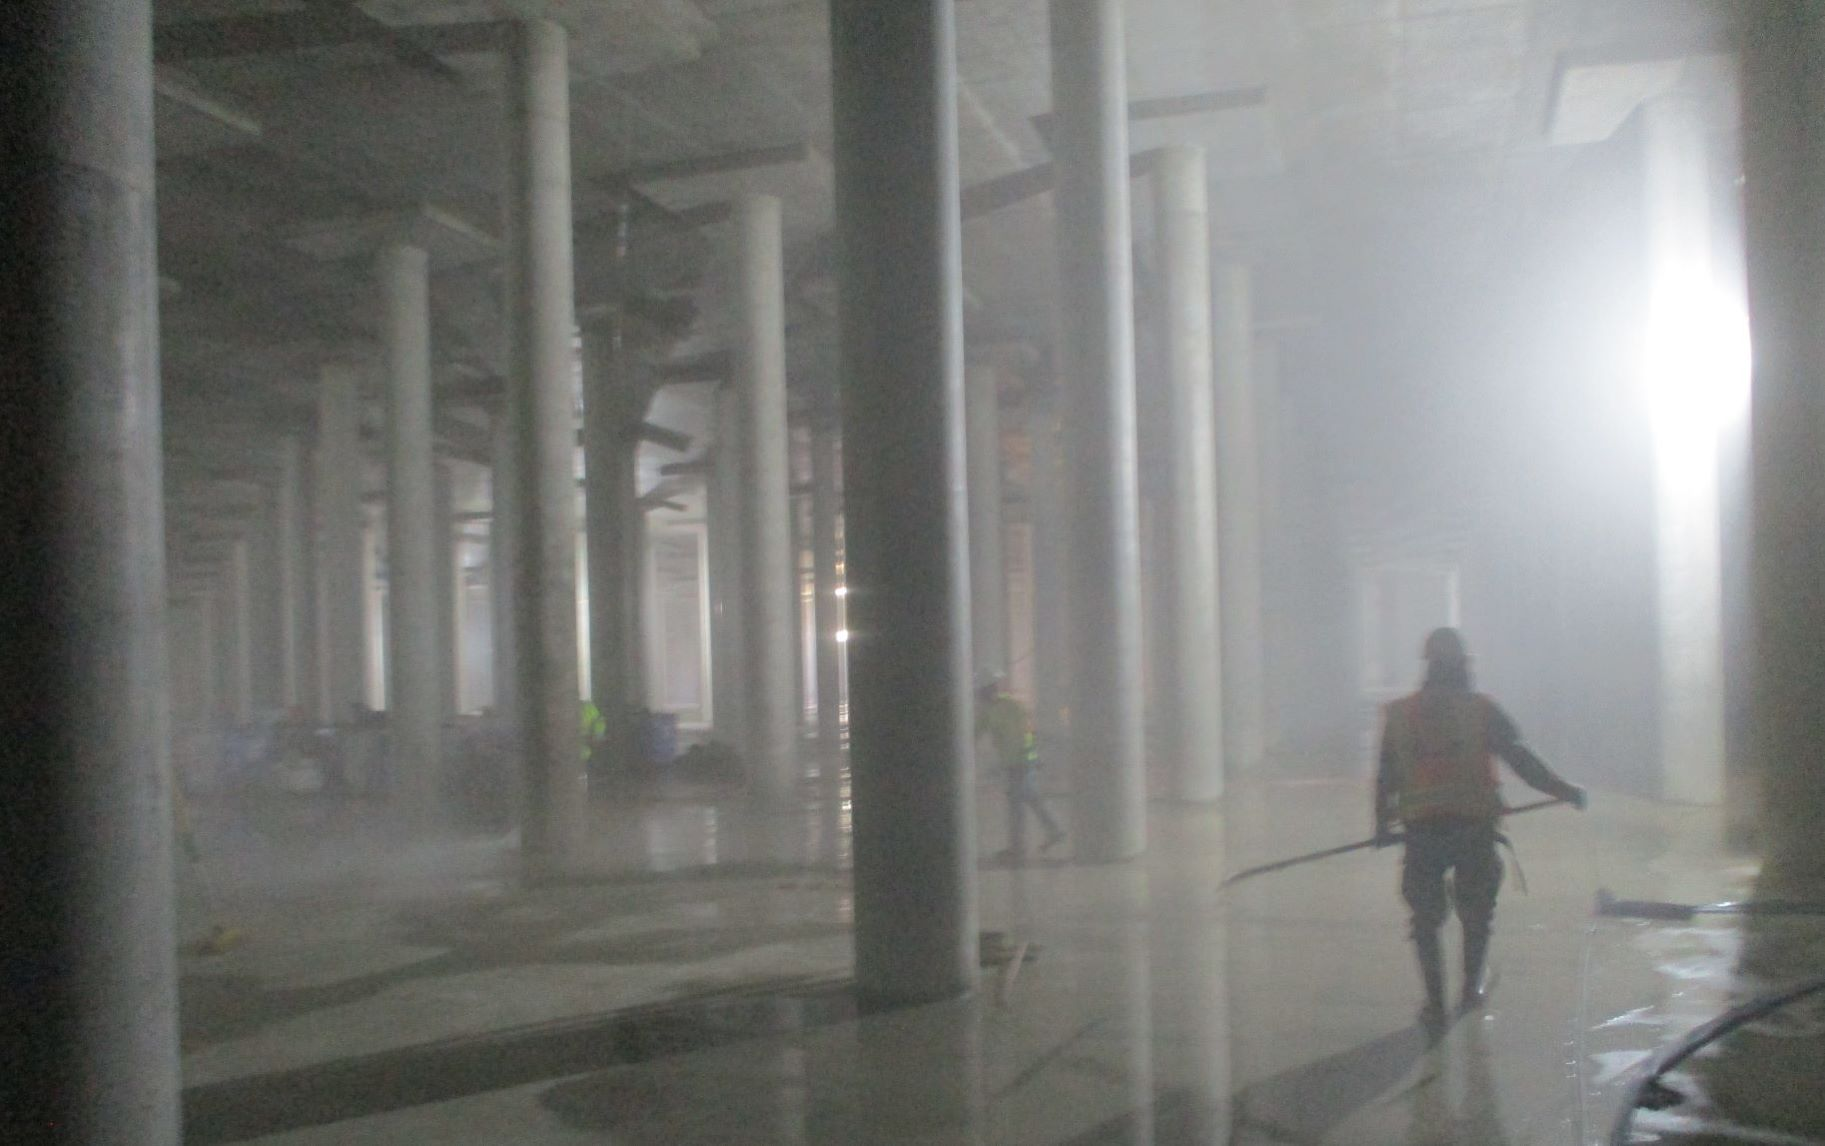 Columns in the midst of sterilization